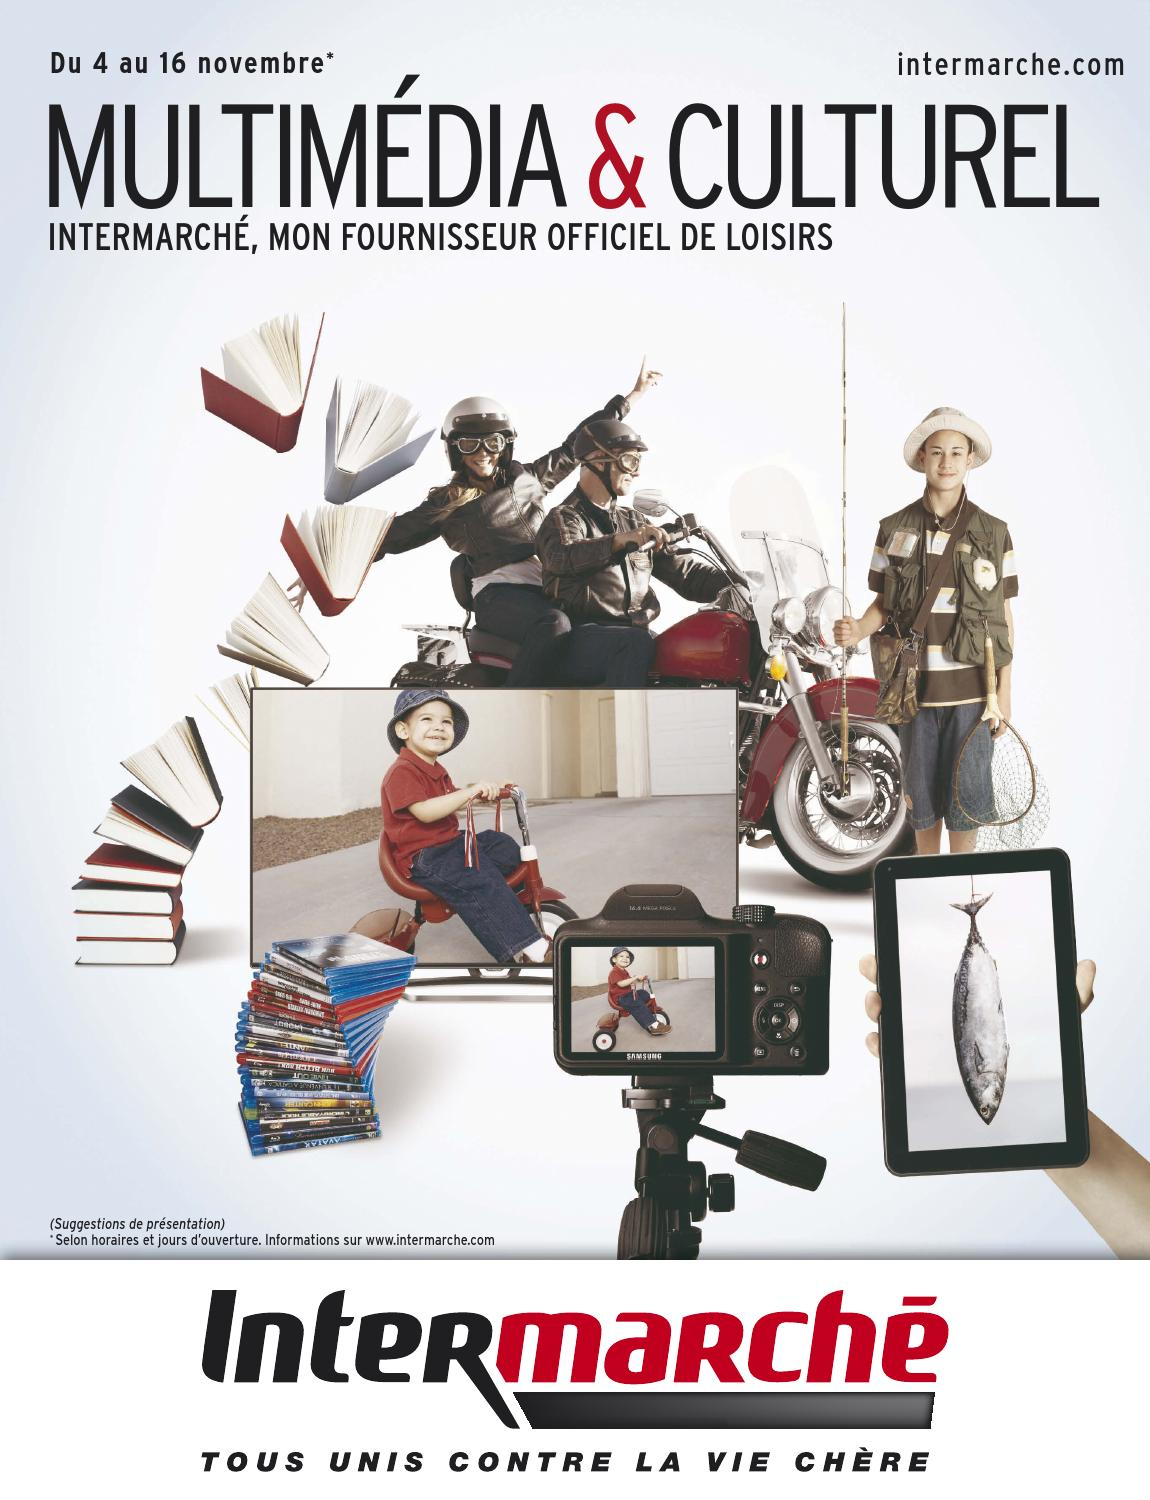 Projecteur Led Exterieur Intermarché Intermarche 04 11 16 11 By Joe Monroe Issuu